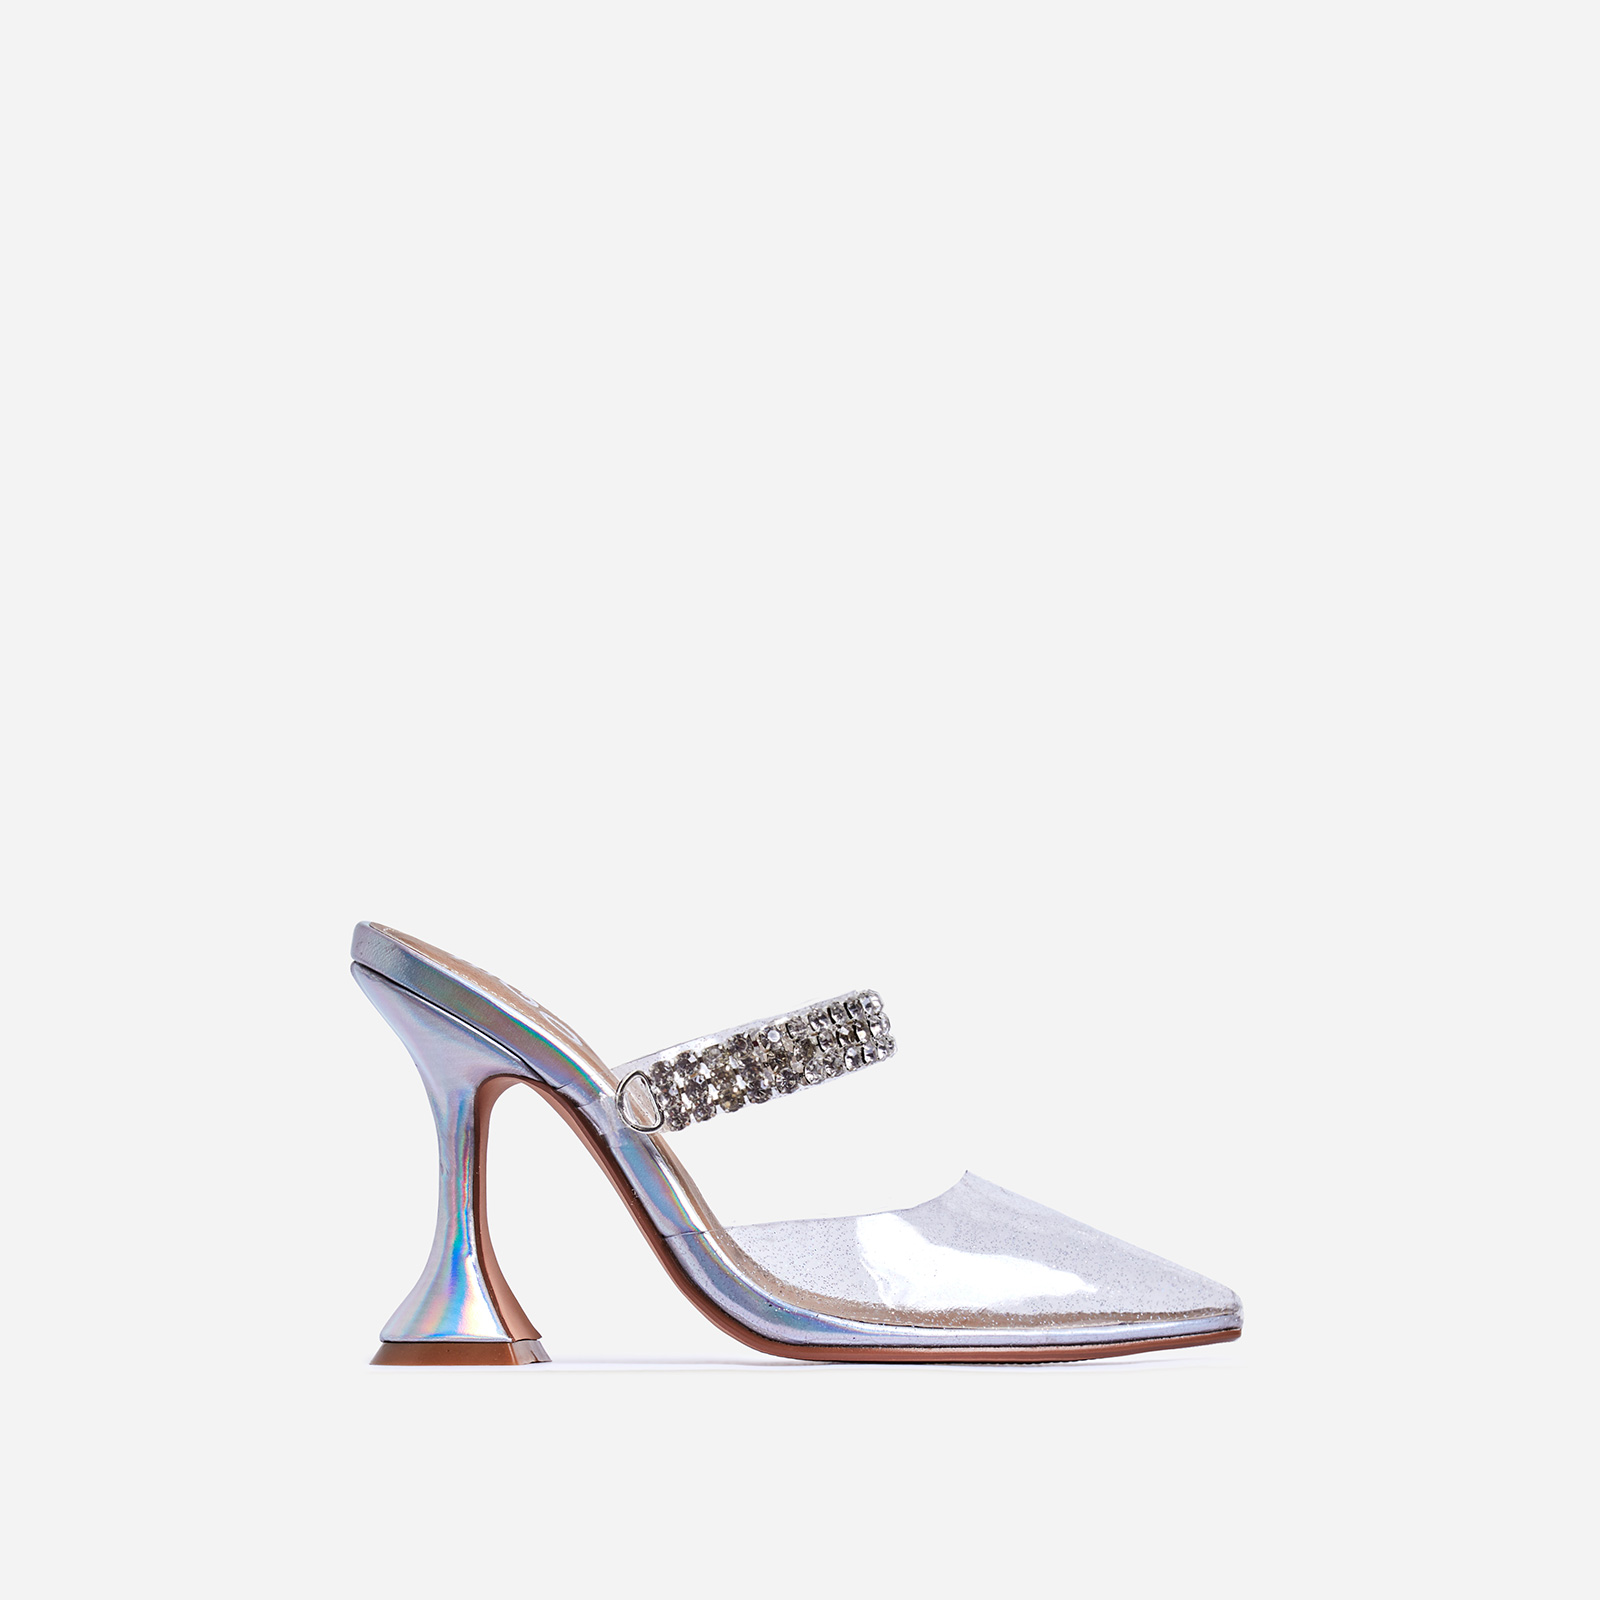 Spice Diamante Detail Perspex Pyramid Heel Mule In Silver Holographic Faux Leather